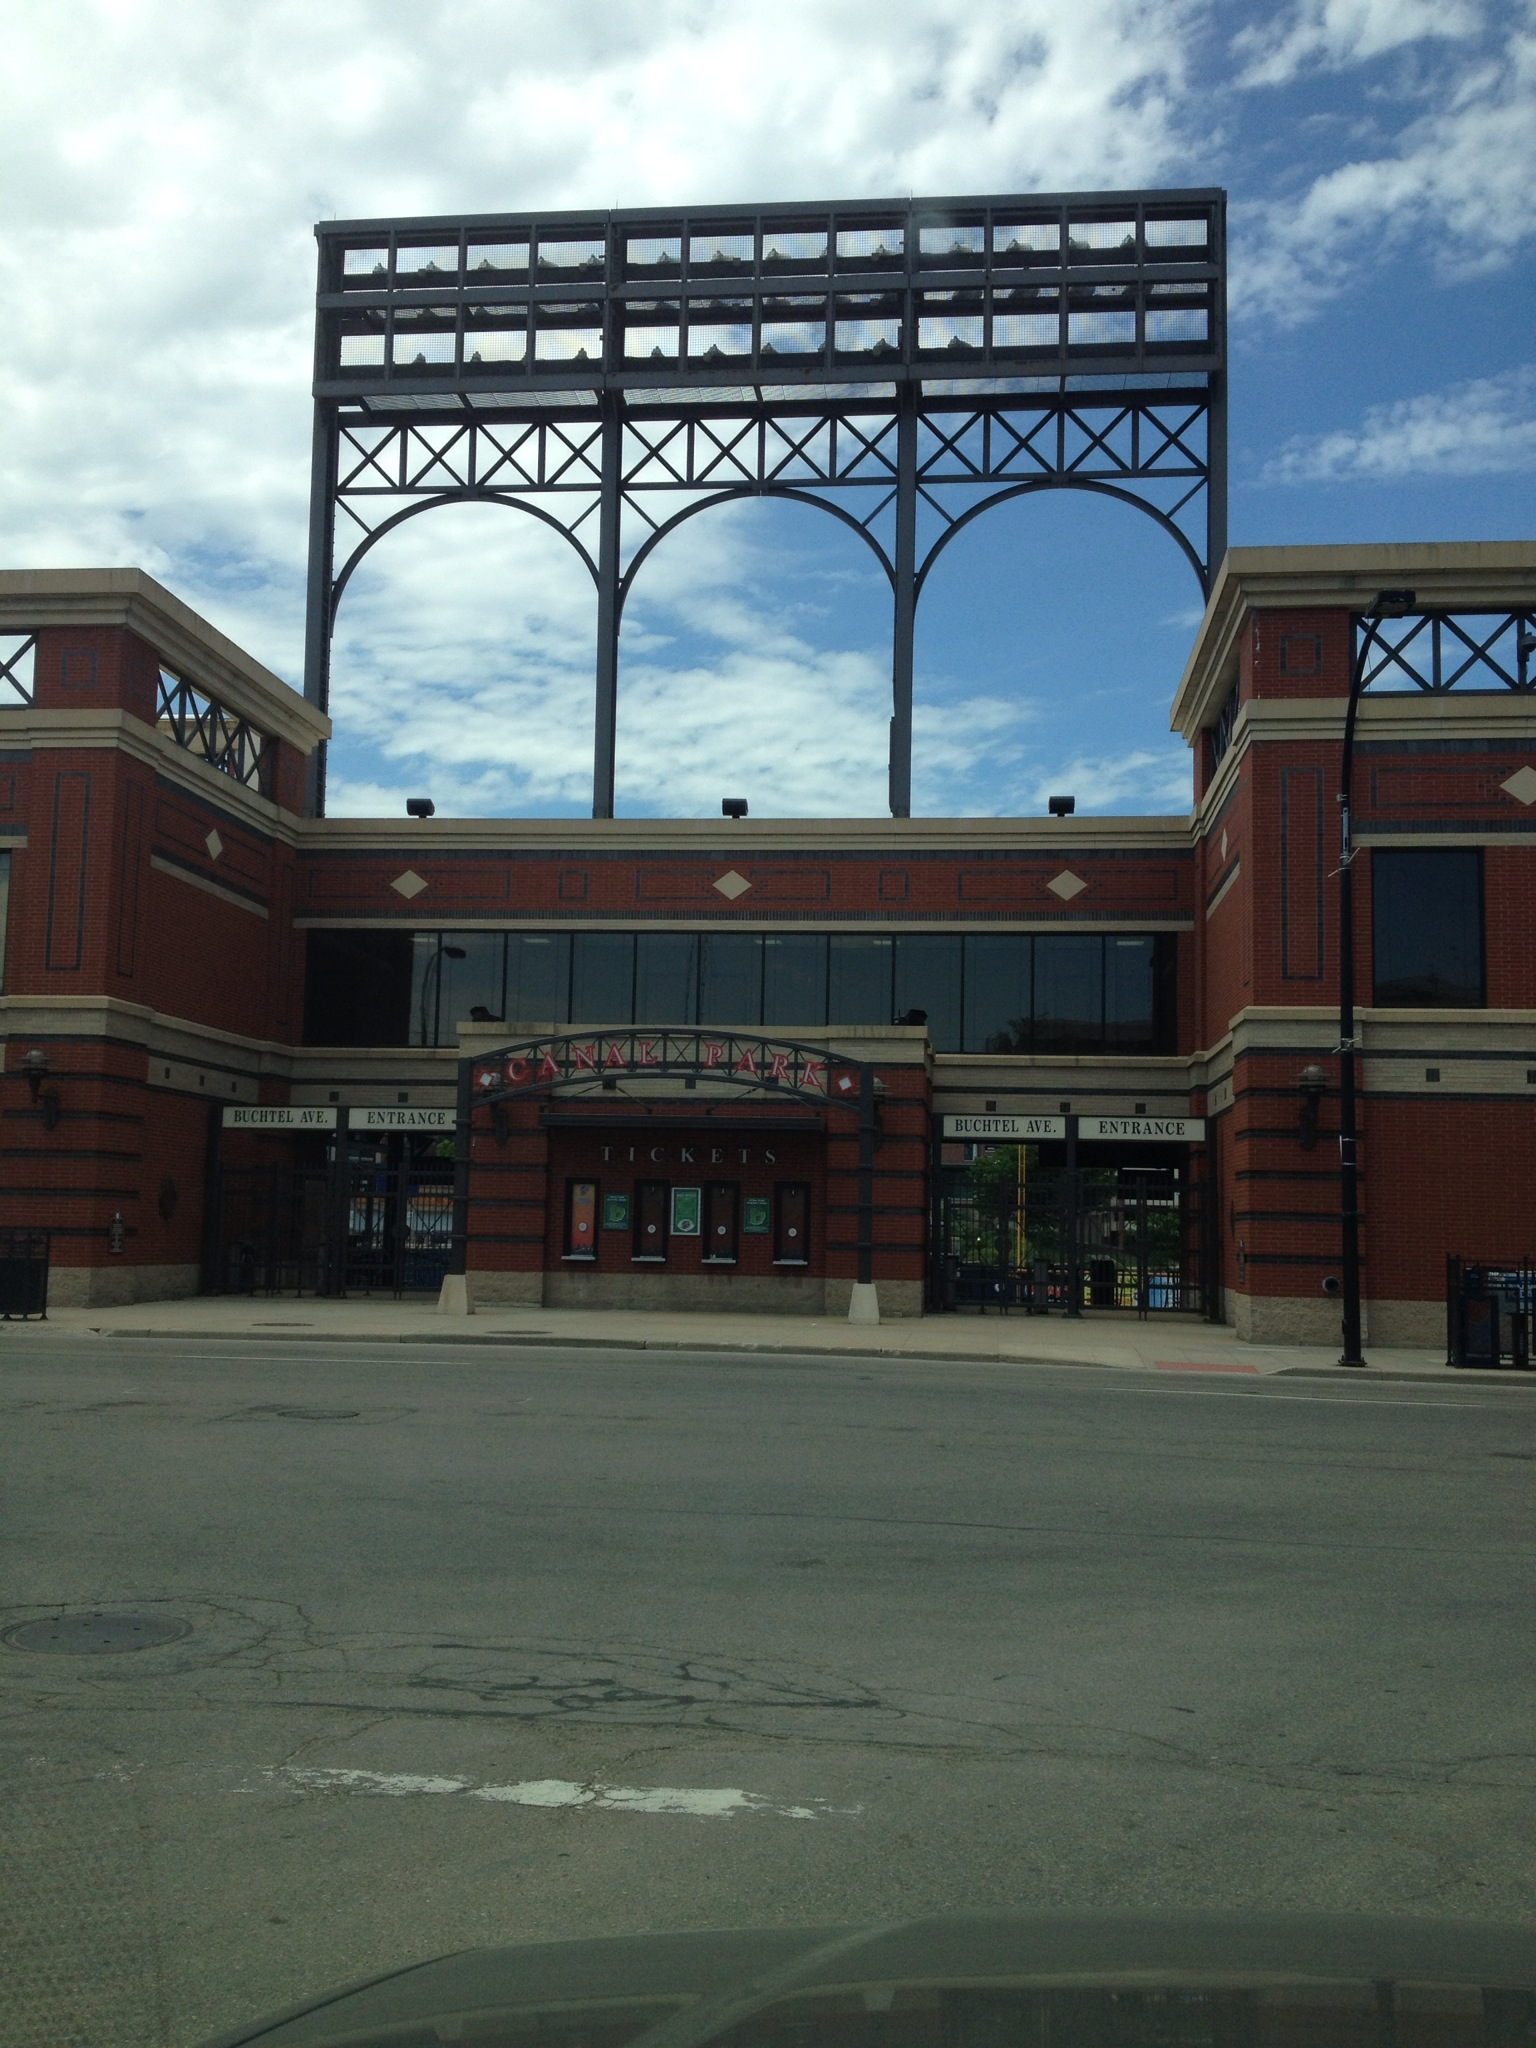 Canal Park – Home Of The Akron RubberDucks